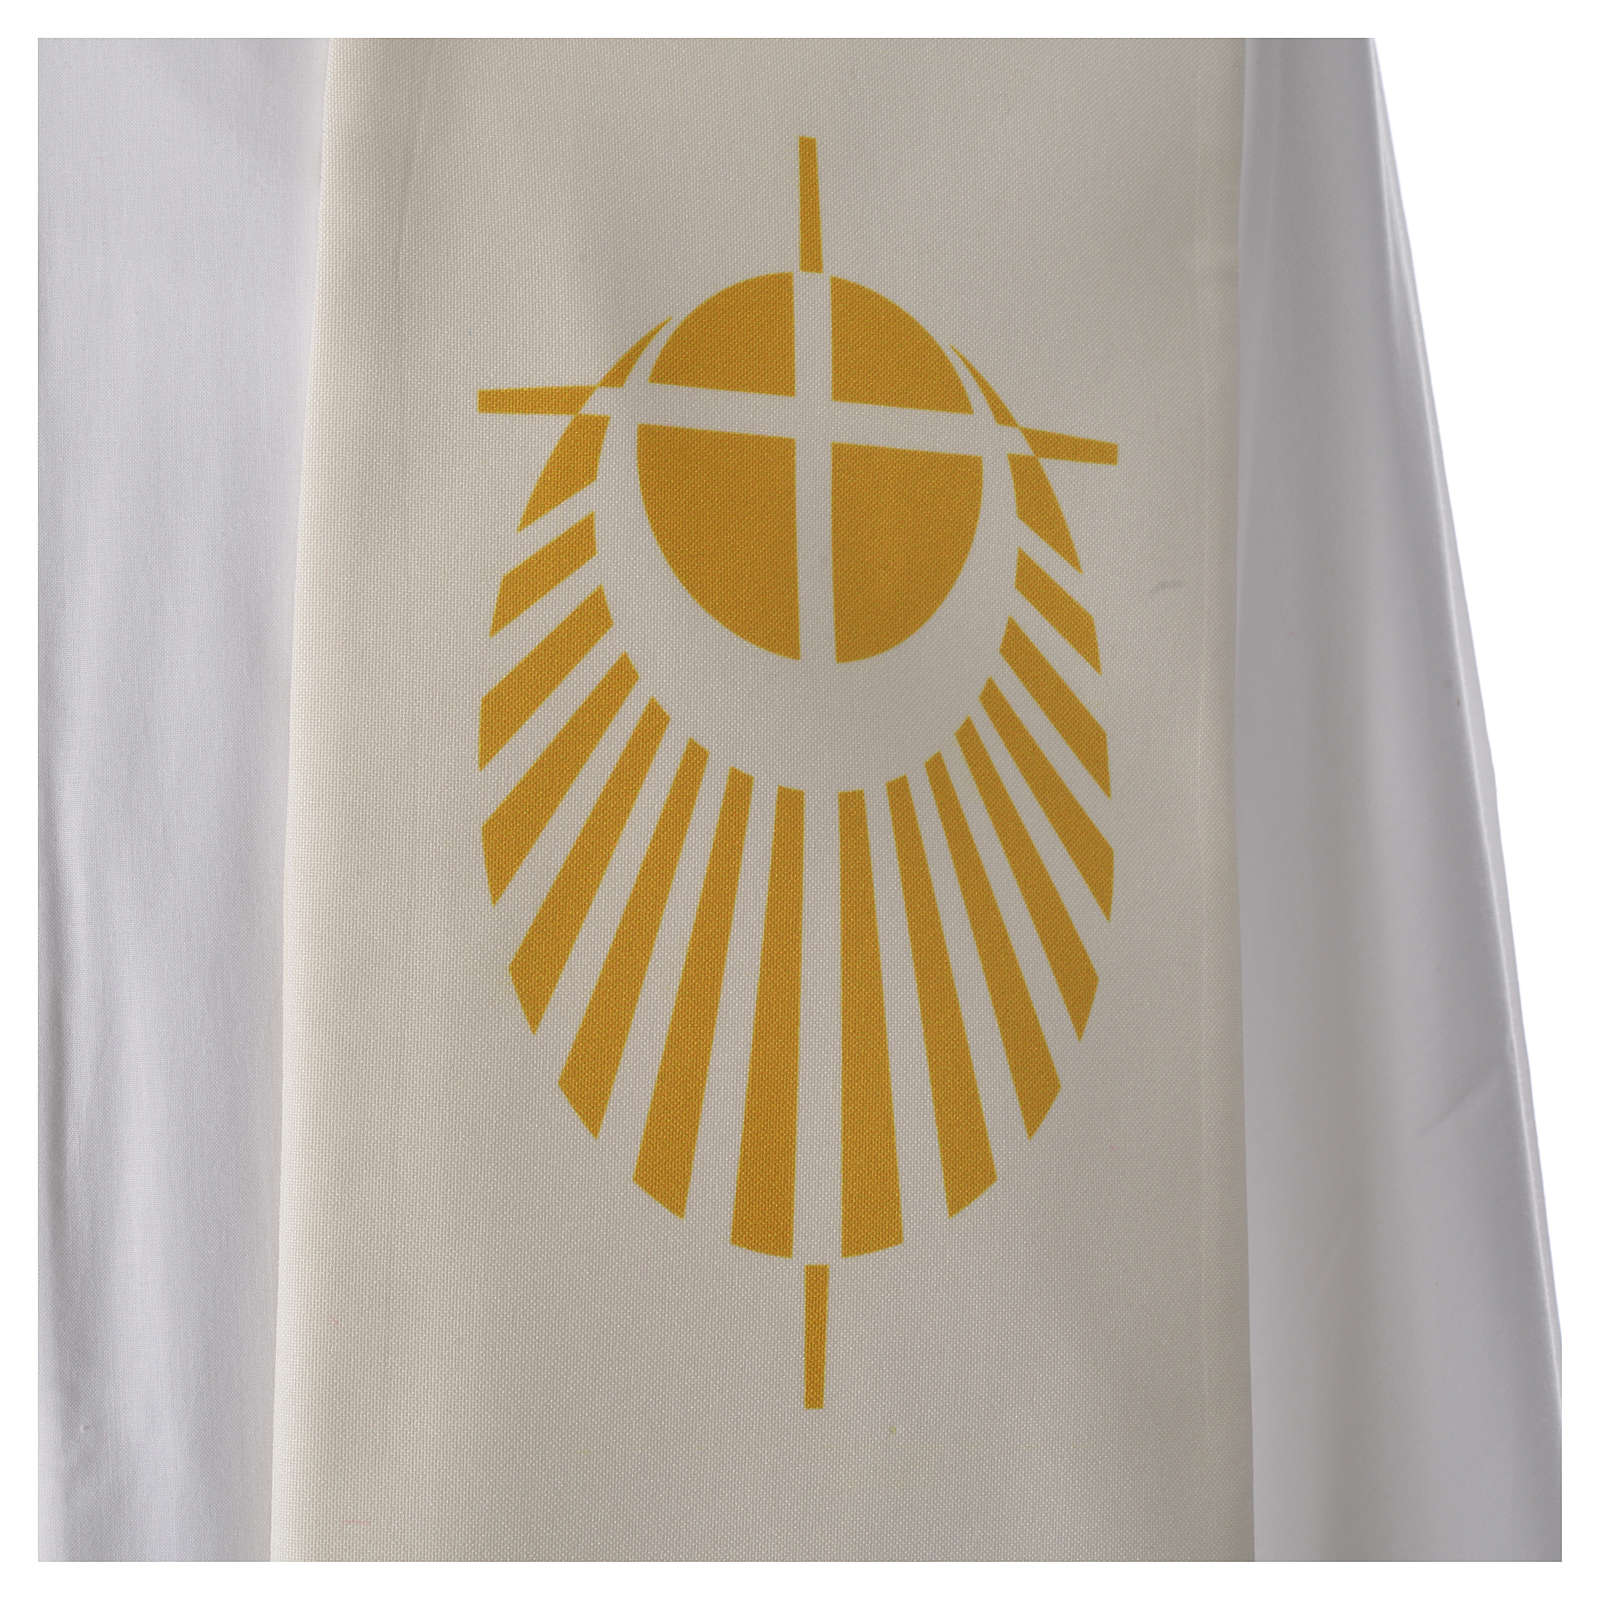 STOCK Jubilee Stole with Latin writing, printed logo 4